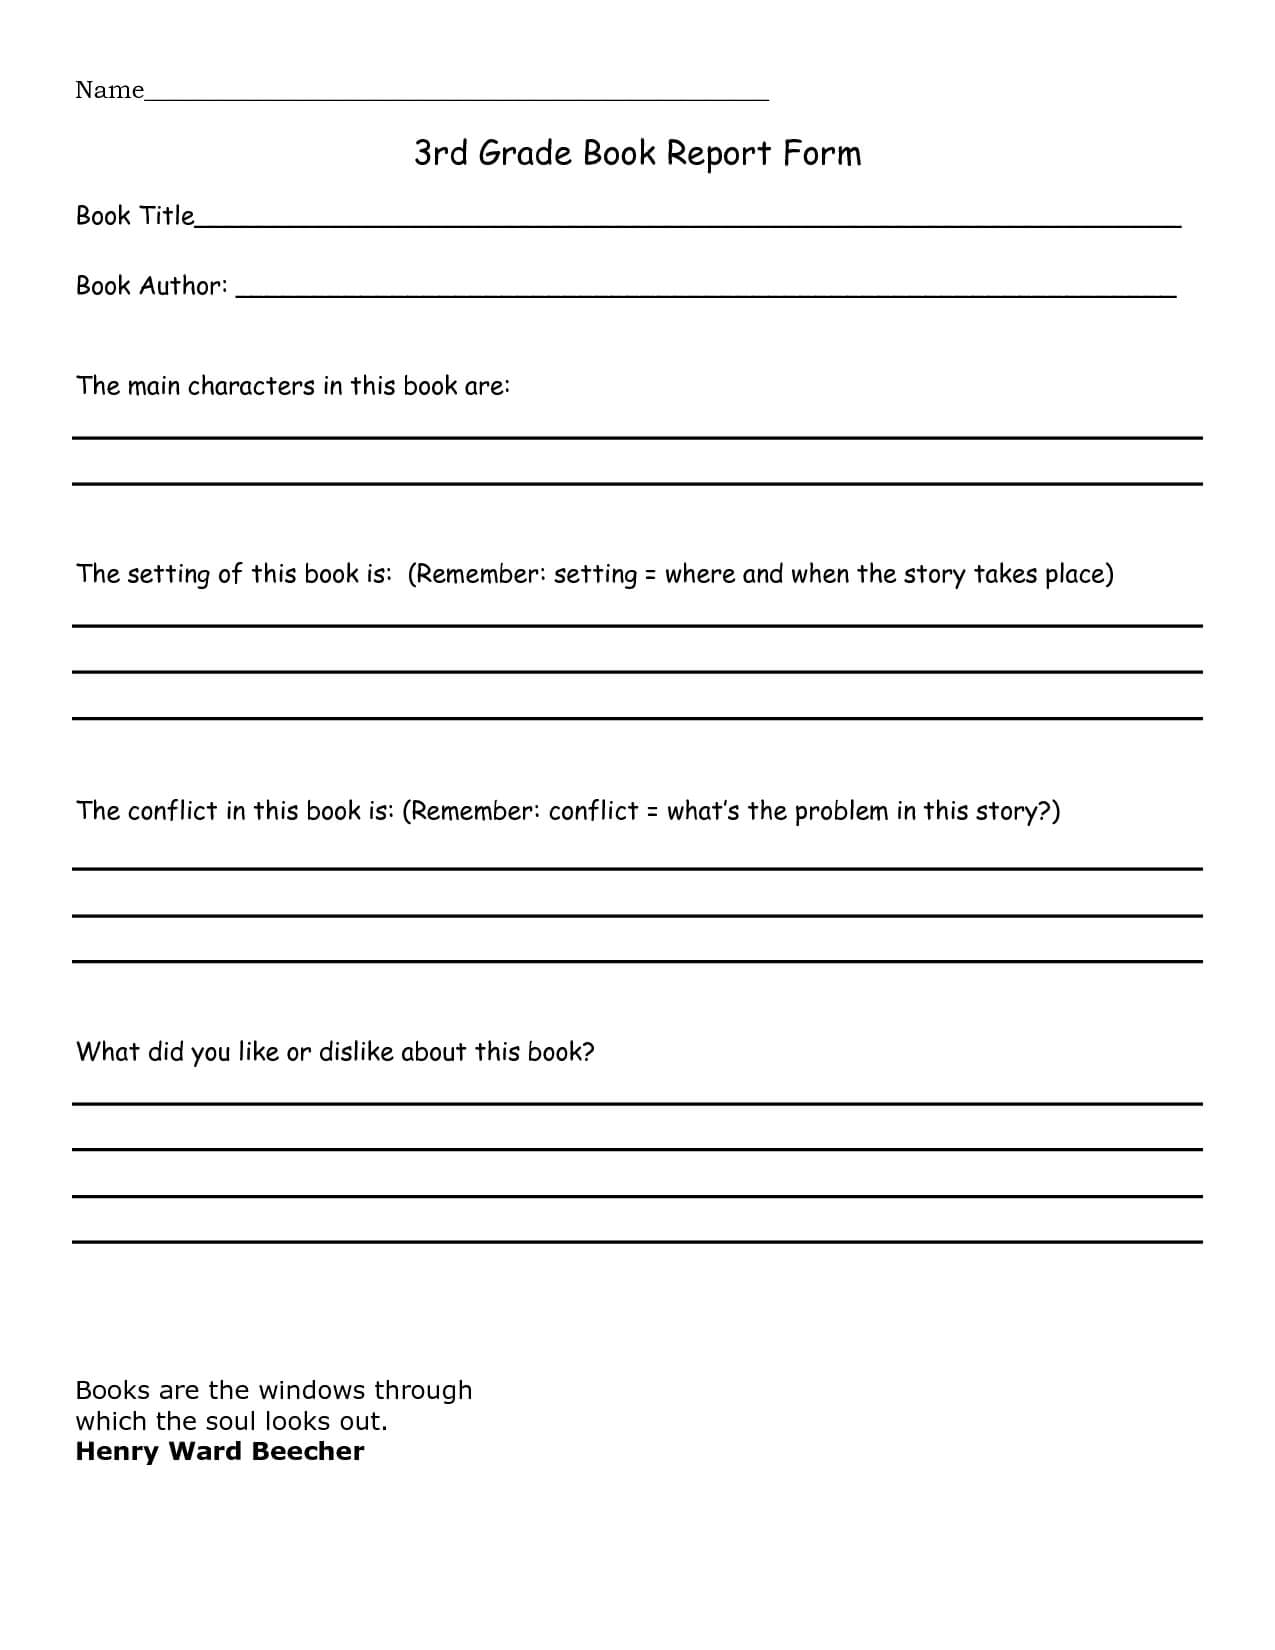 Book Report 3Rd Grade Template - Google Search | Home Inside Book Report Template In Spanish